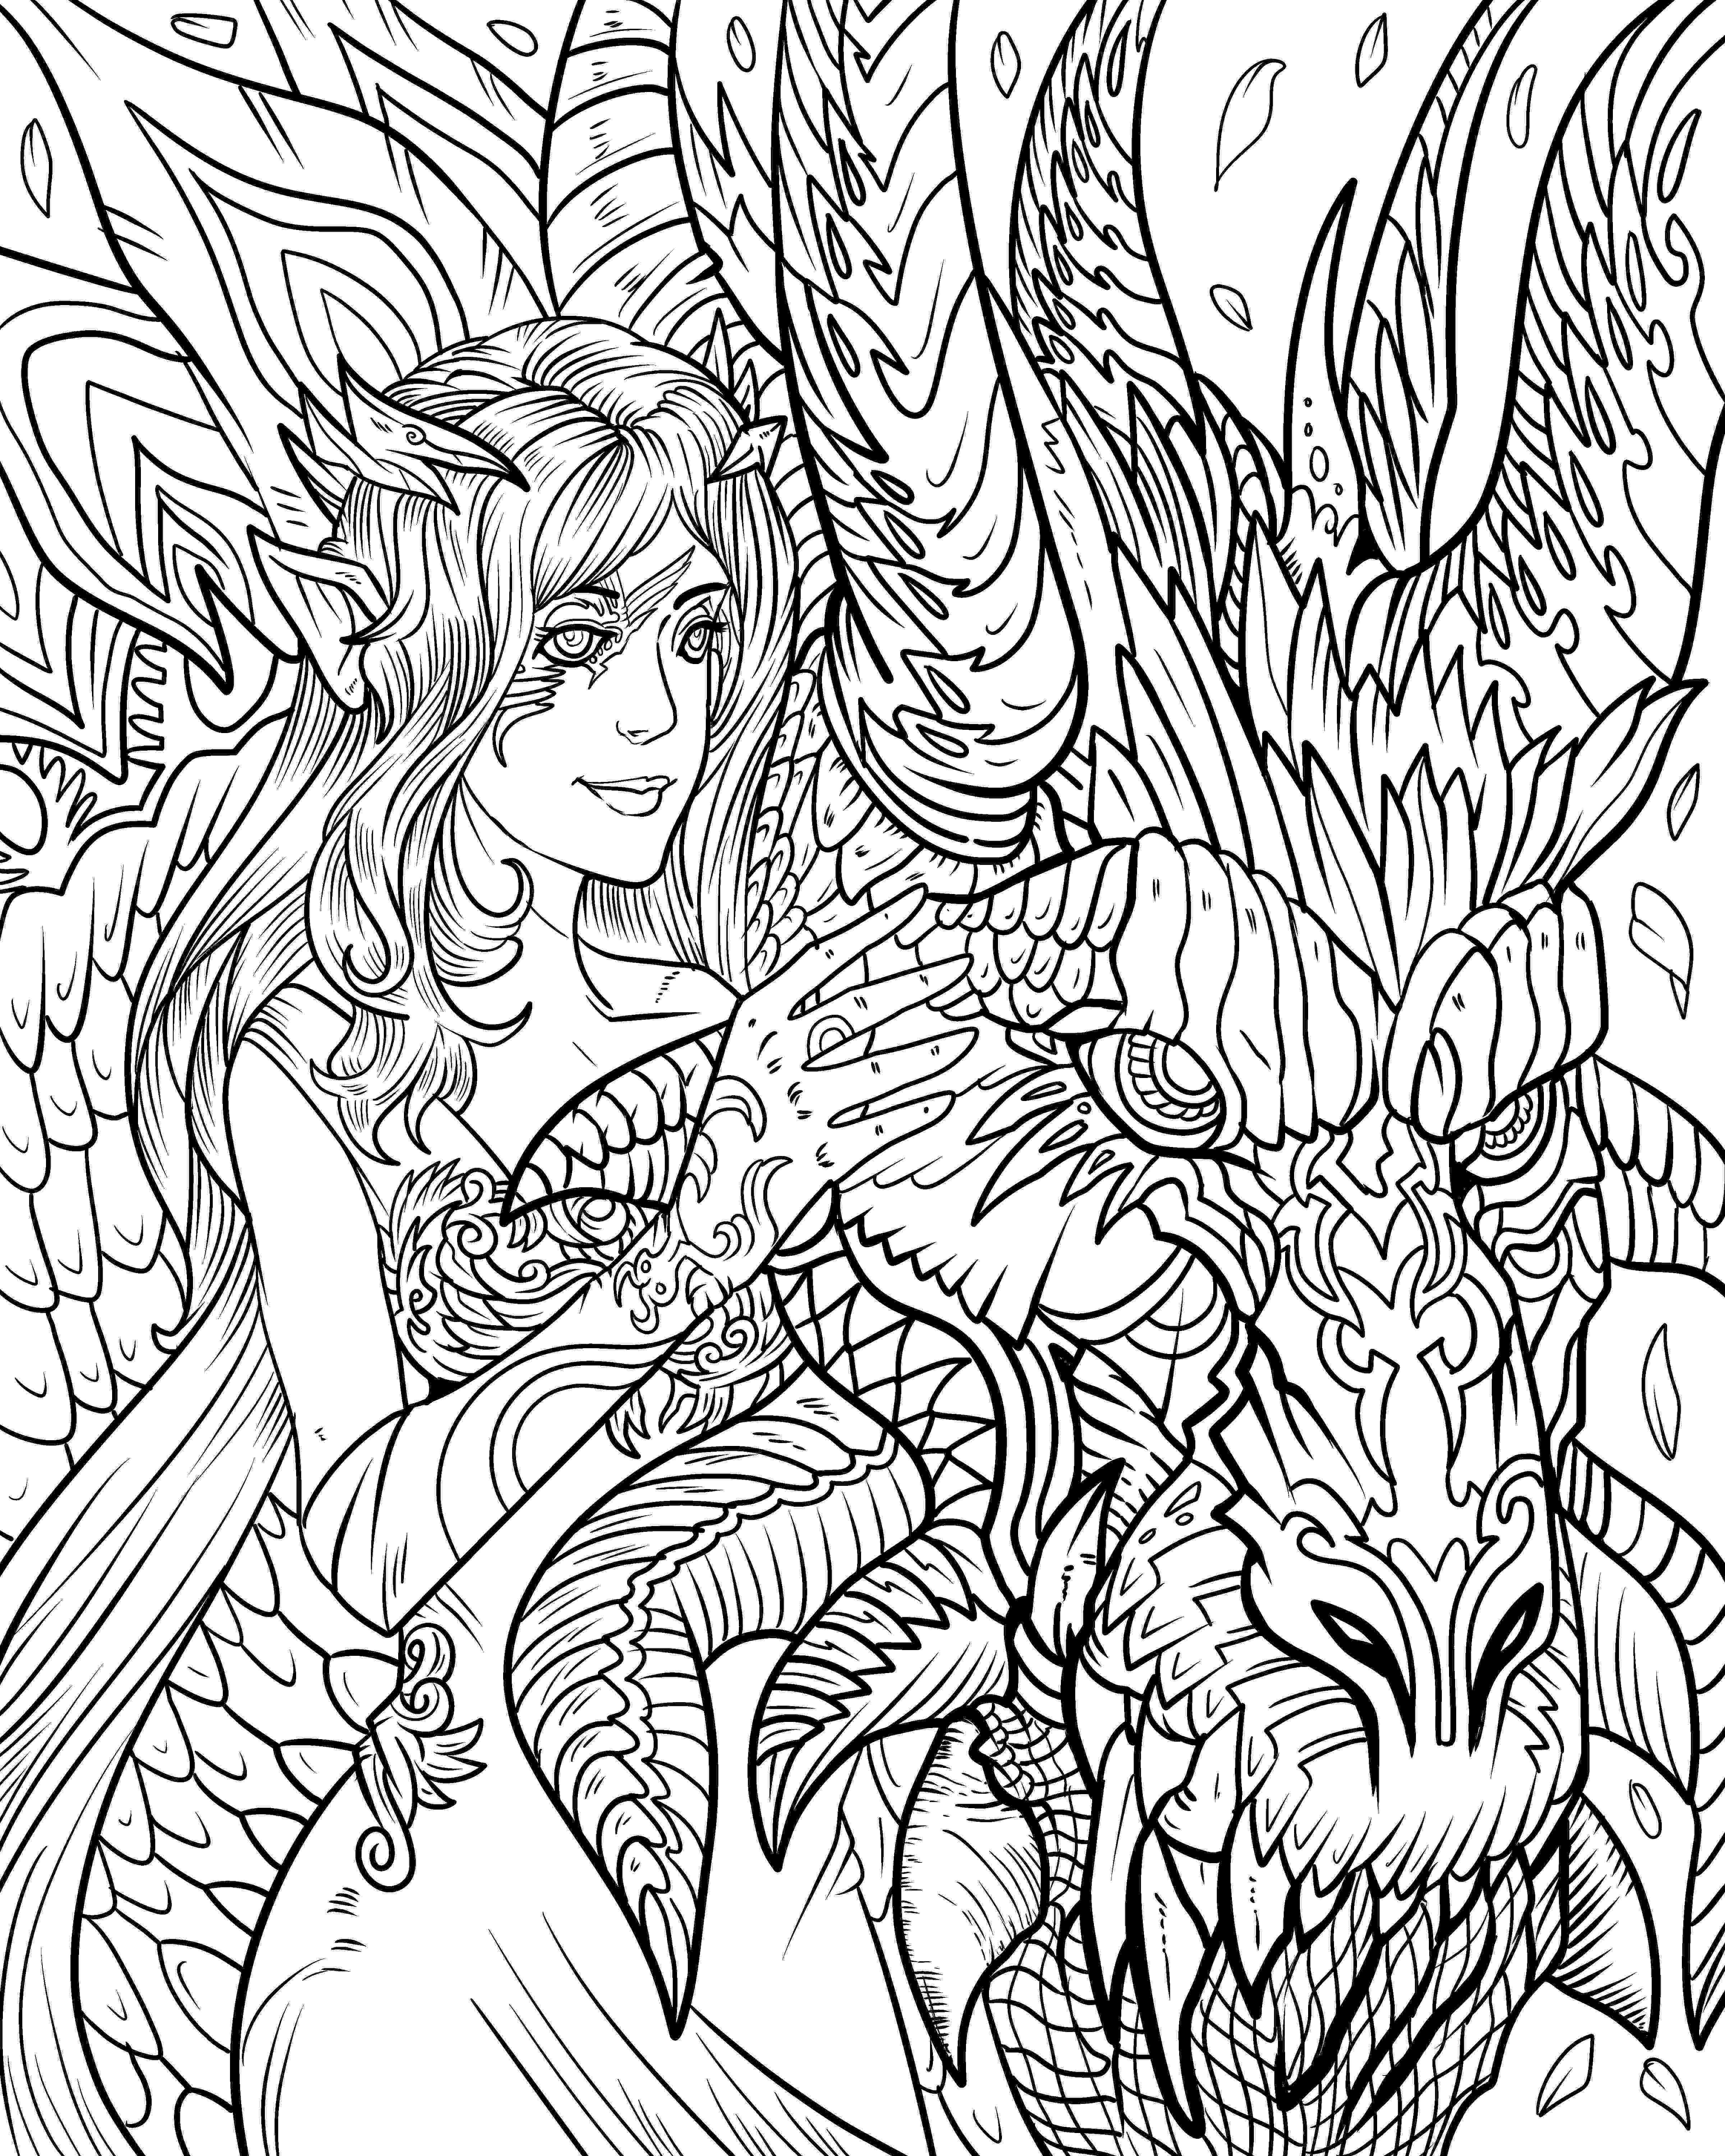 dragon coloring pages pdf dragon life adult coloring books nathaniel wake publishing coloring pages pdf dragon